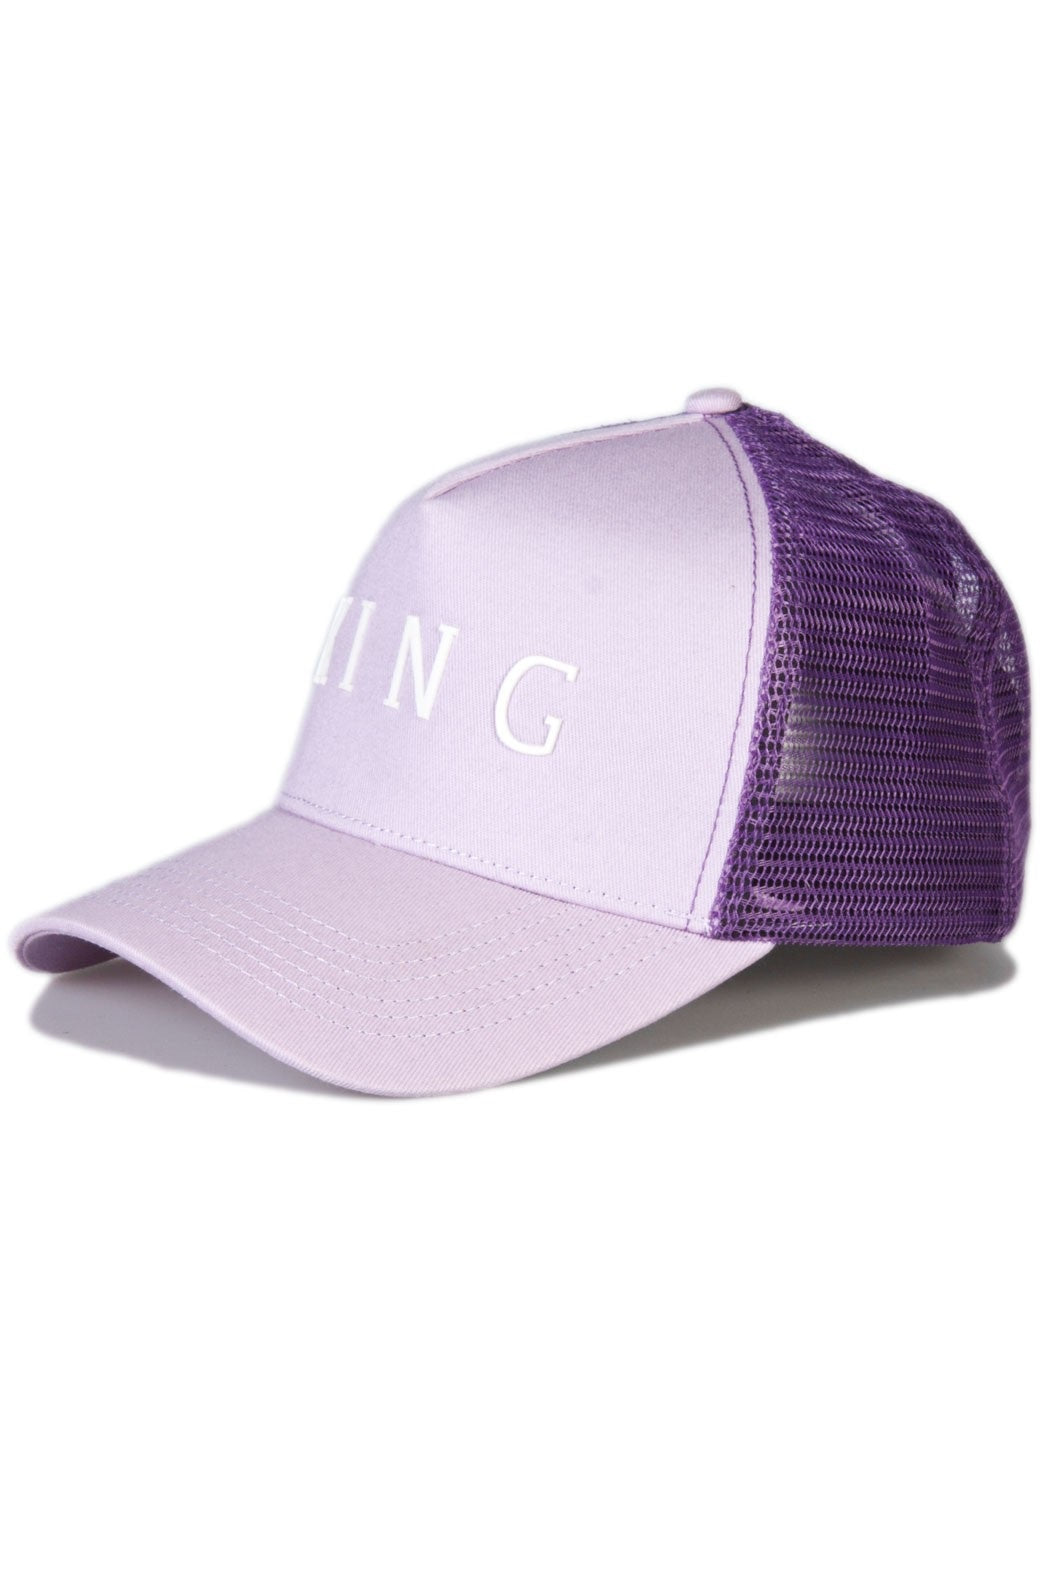 KING APPAREL Mesh Trucker Cap Leyton Lilac - Circle Collective